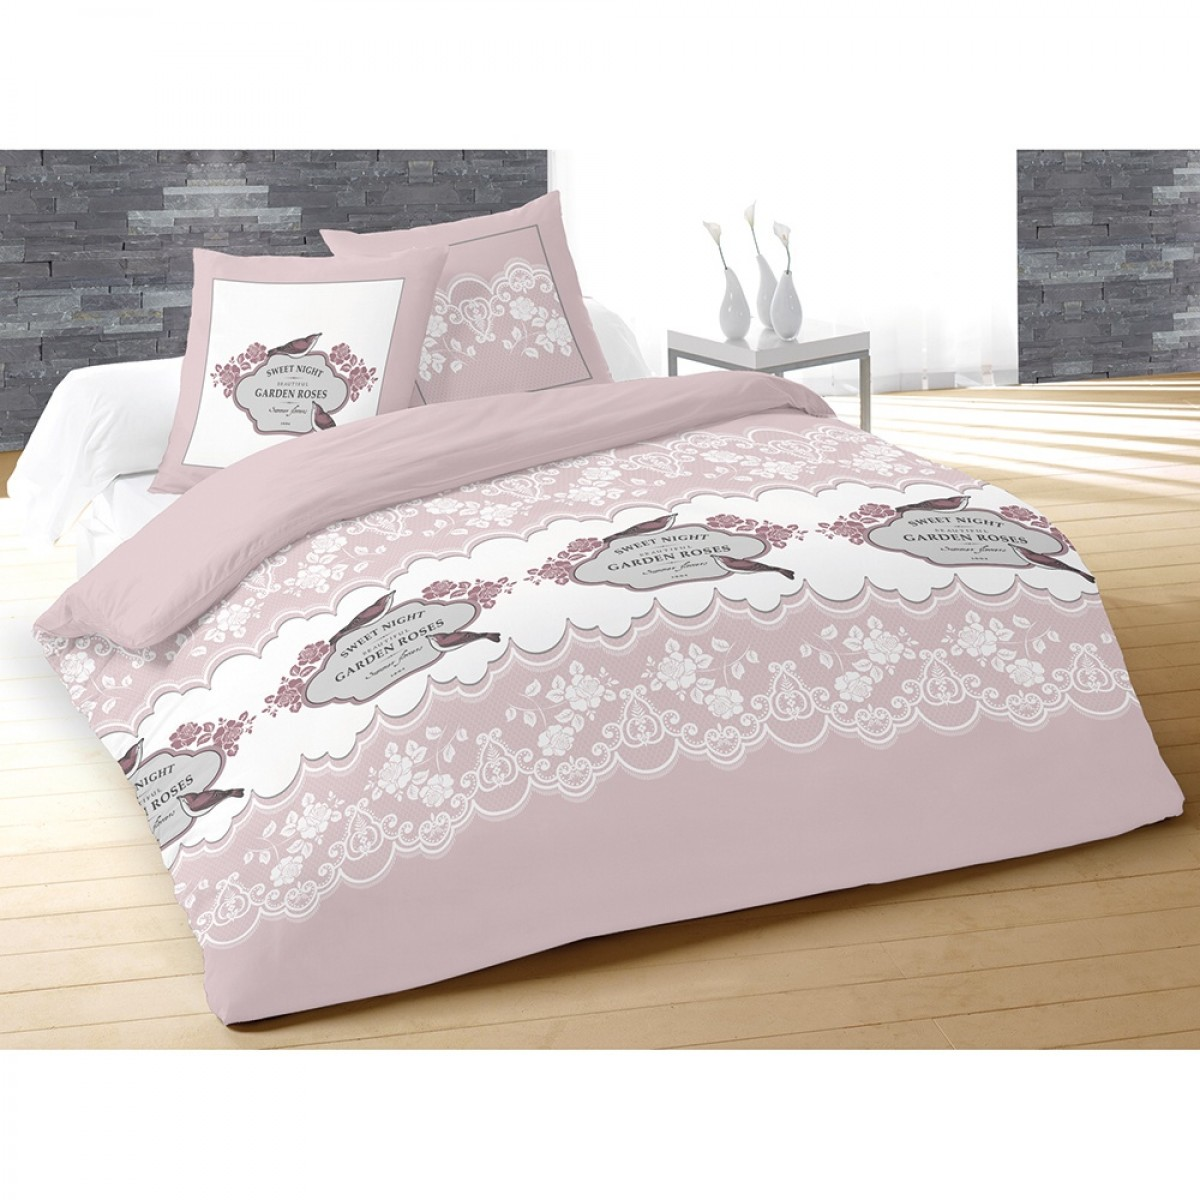 housse de couette 240x260 cm 100 coton garden rose 2 taies les douces nuits de ma linge. Black Bedroom Furniture Sets. Home Design Ideas